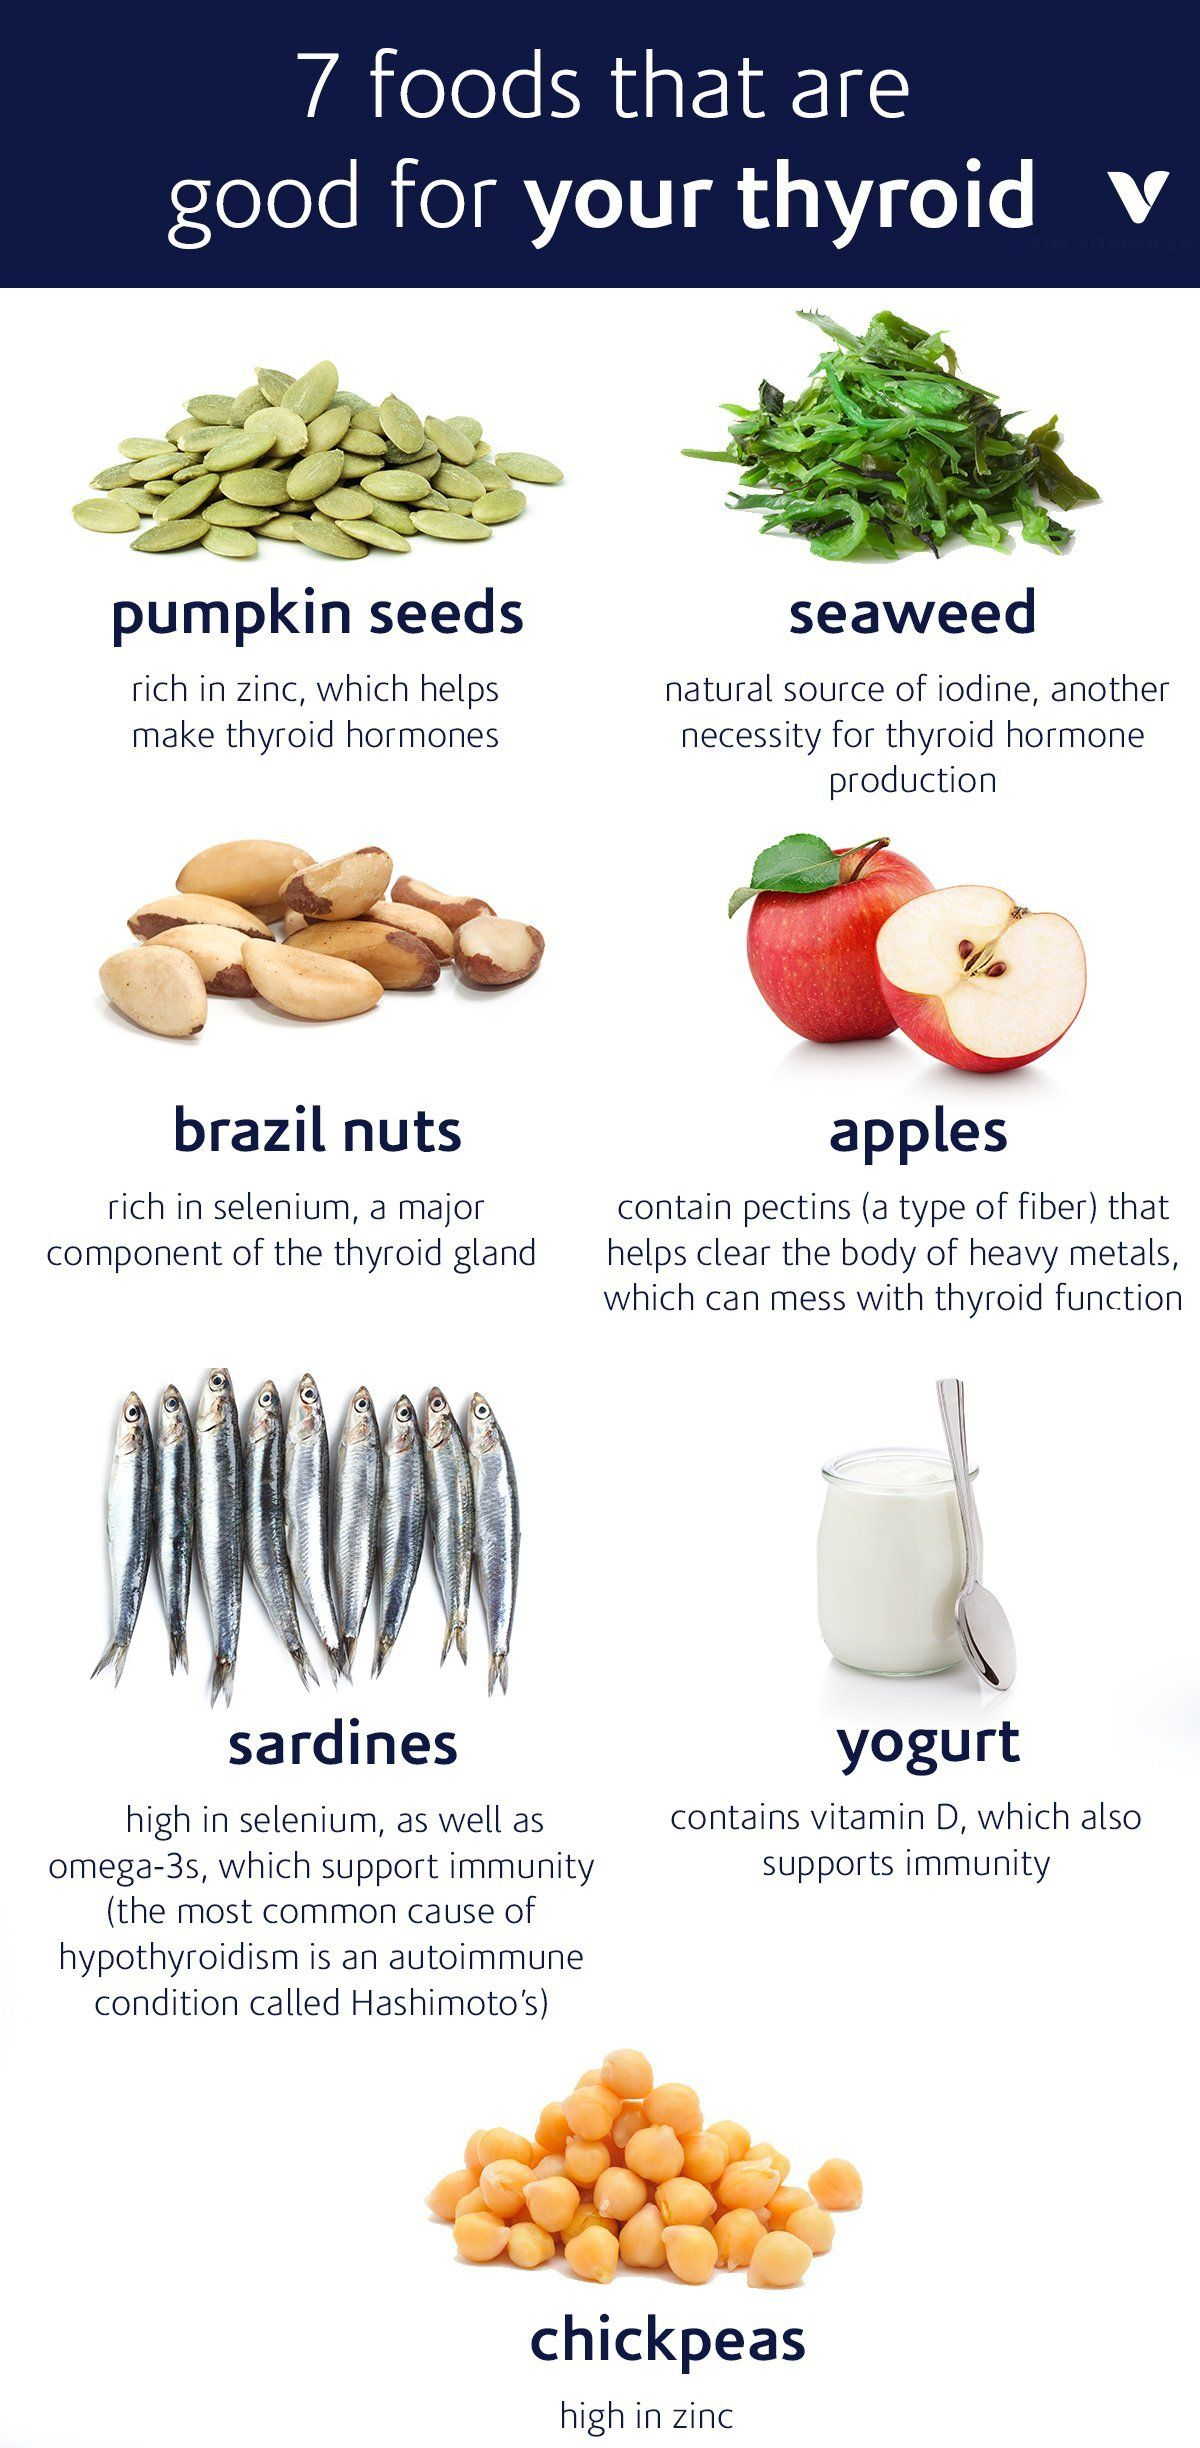 7 Foods That Are Good For Your Thyroid | What's Good by V ...